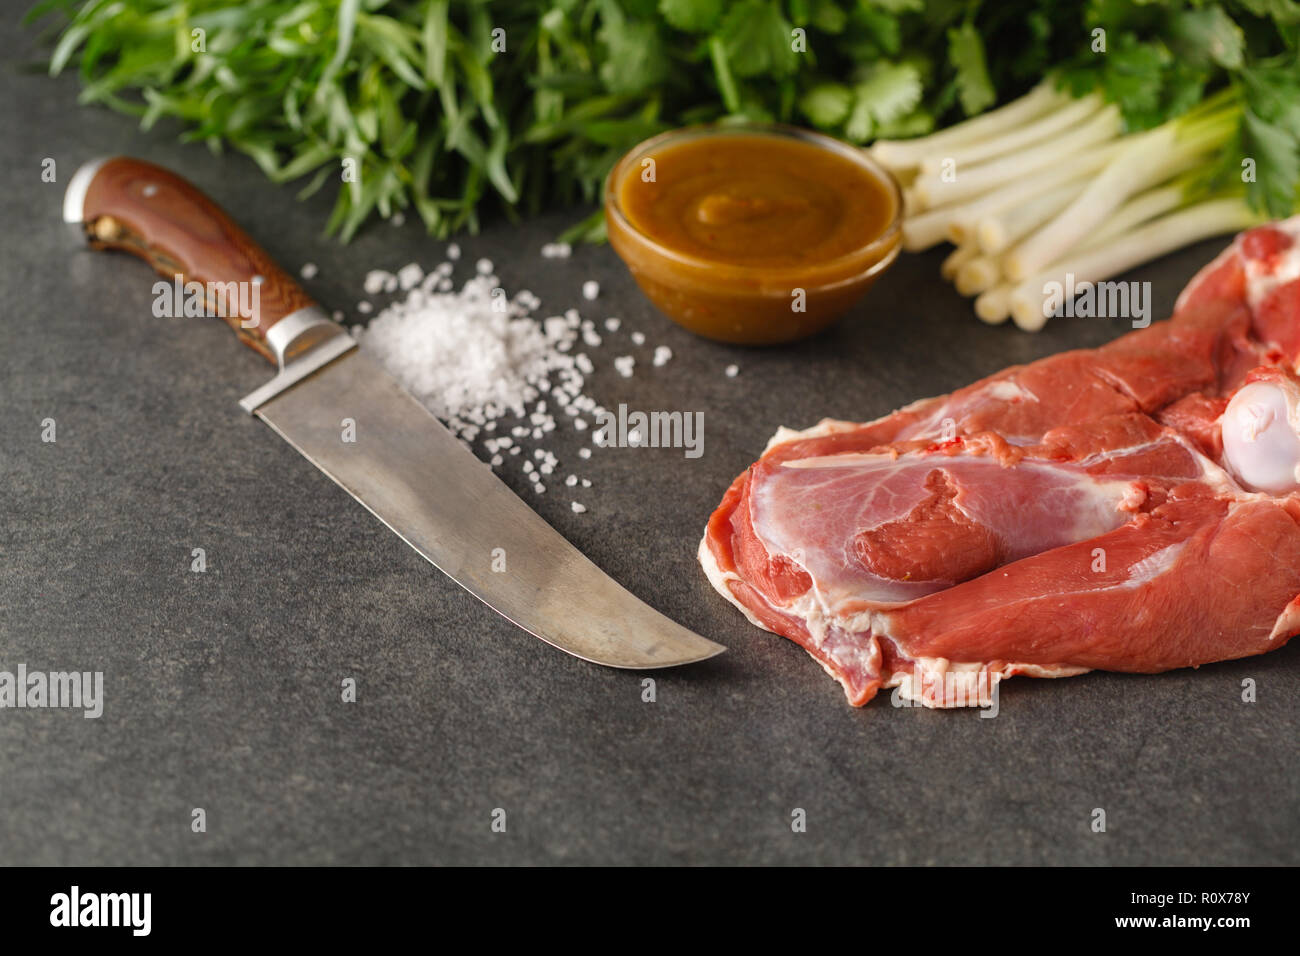 Raw lamb meat with spices on wood board over old wooden background. Close up, selective focus. - Stock Image